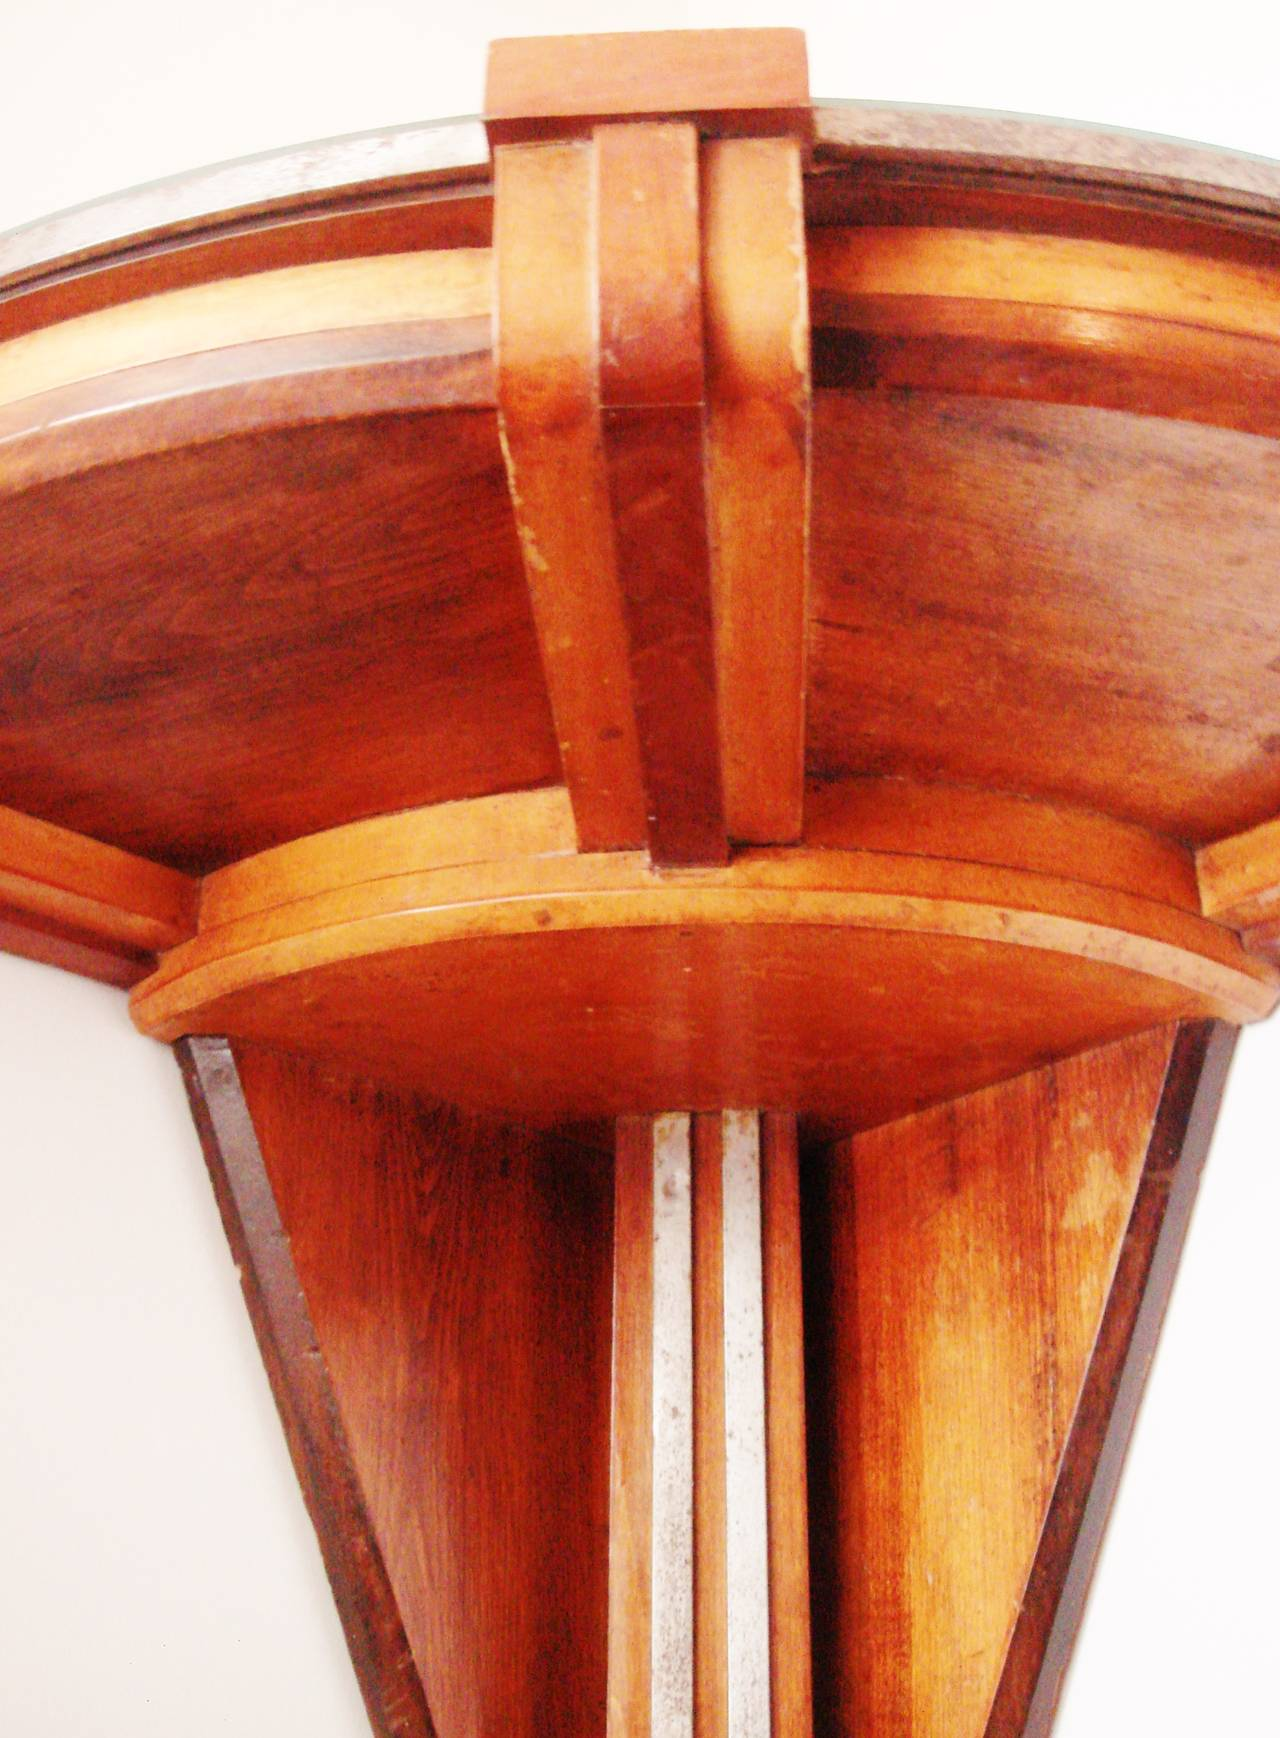 ... Wood and Chrome Banded Wall Mounted Corner Table For Sale at 1stdibs